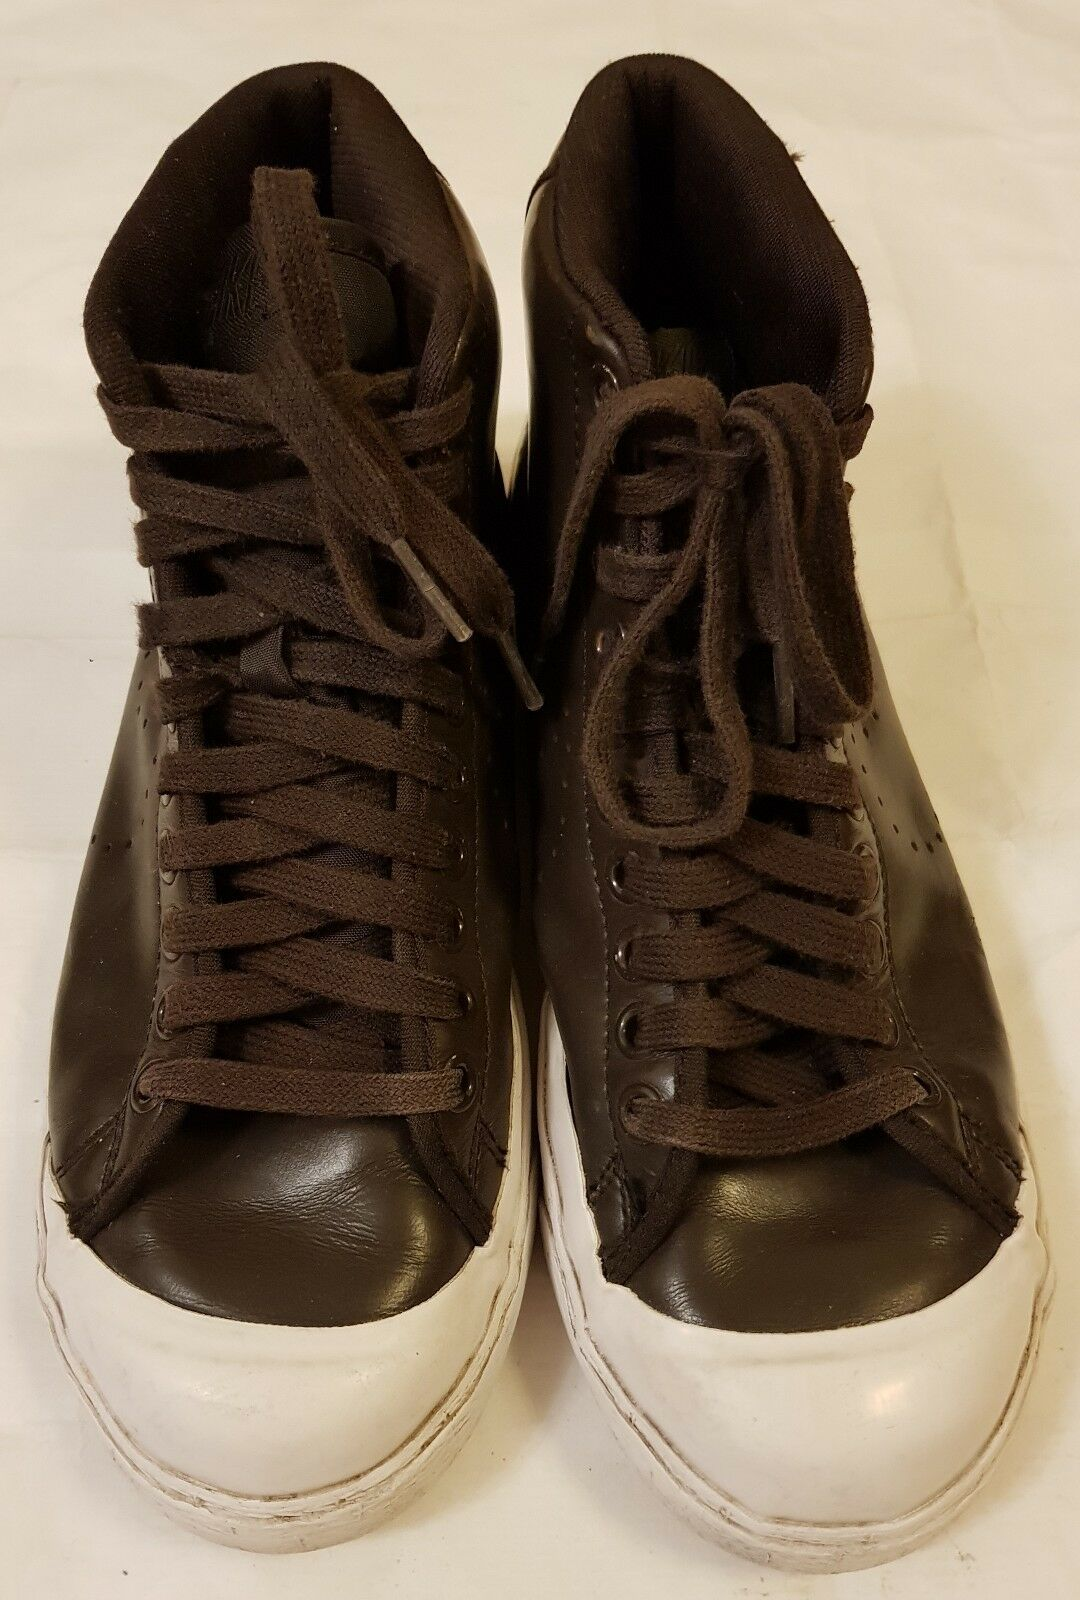 NIKE BROWN HIGH TOP LEATHER SNEAKERS/TRAINERS SIZE EURO 40 Cheap women's shoes women's shoes